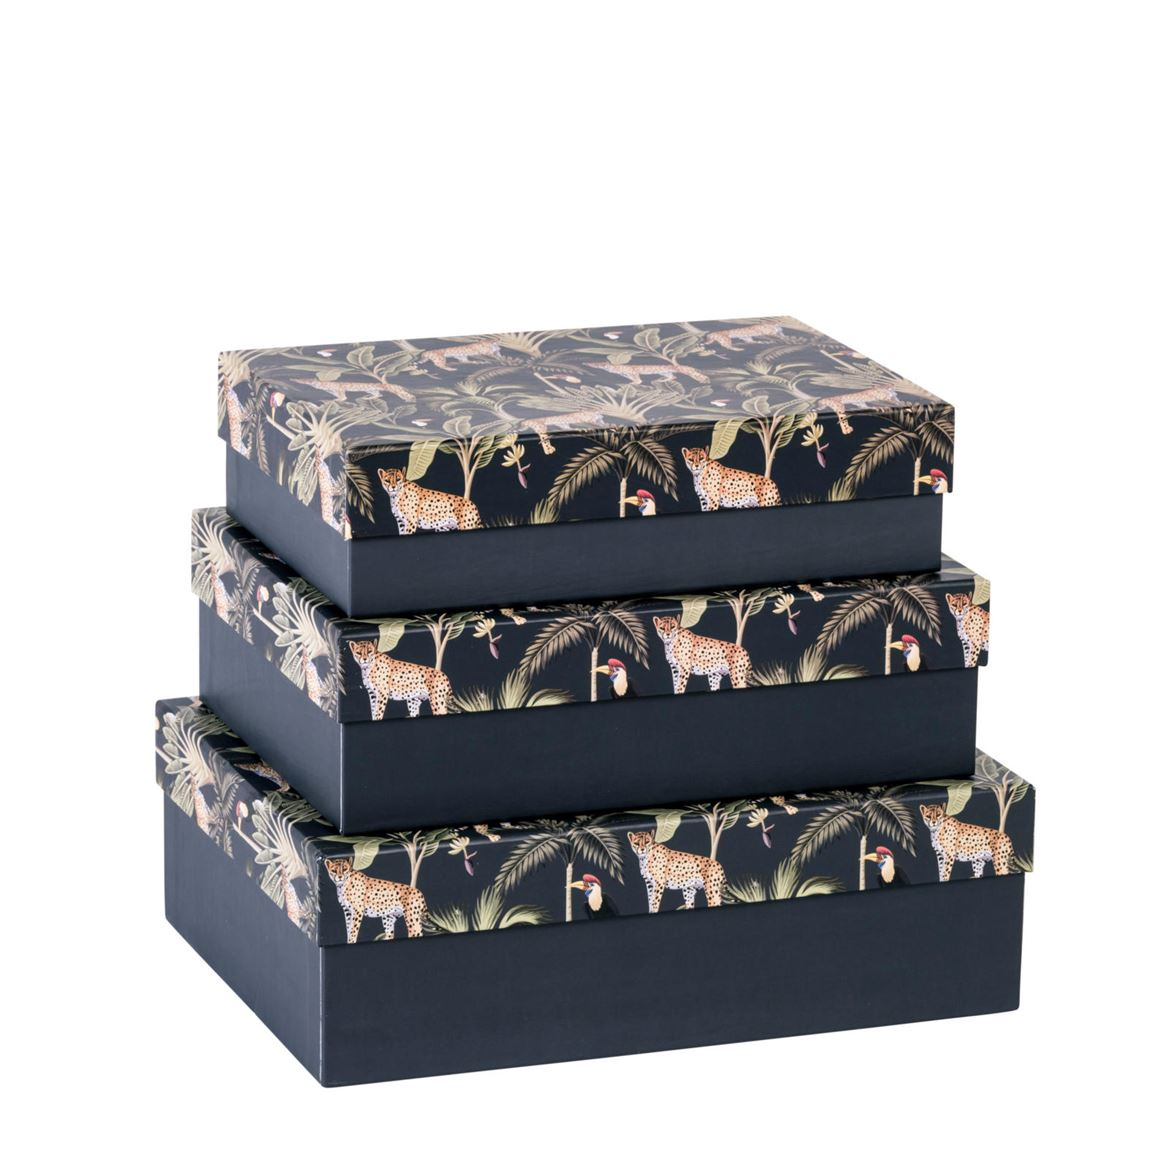 JUNGLE Doos multicolor H 6 x B 15 x D 21 cm_jungle-doos-multicolor-h-6-x-b-15-x-d-21-cm